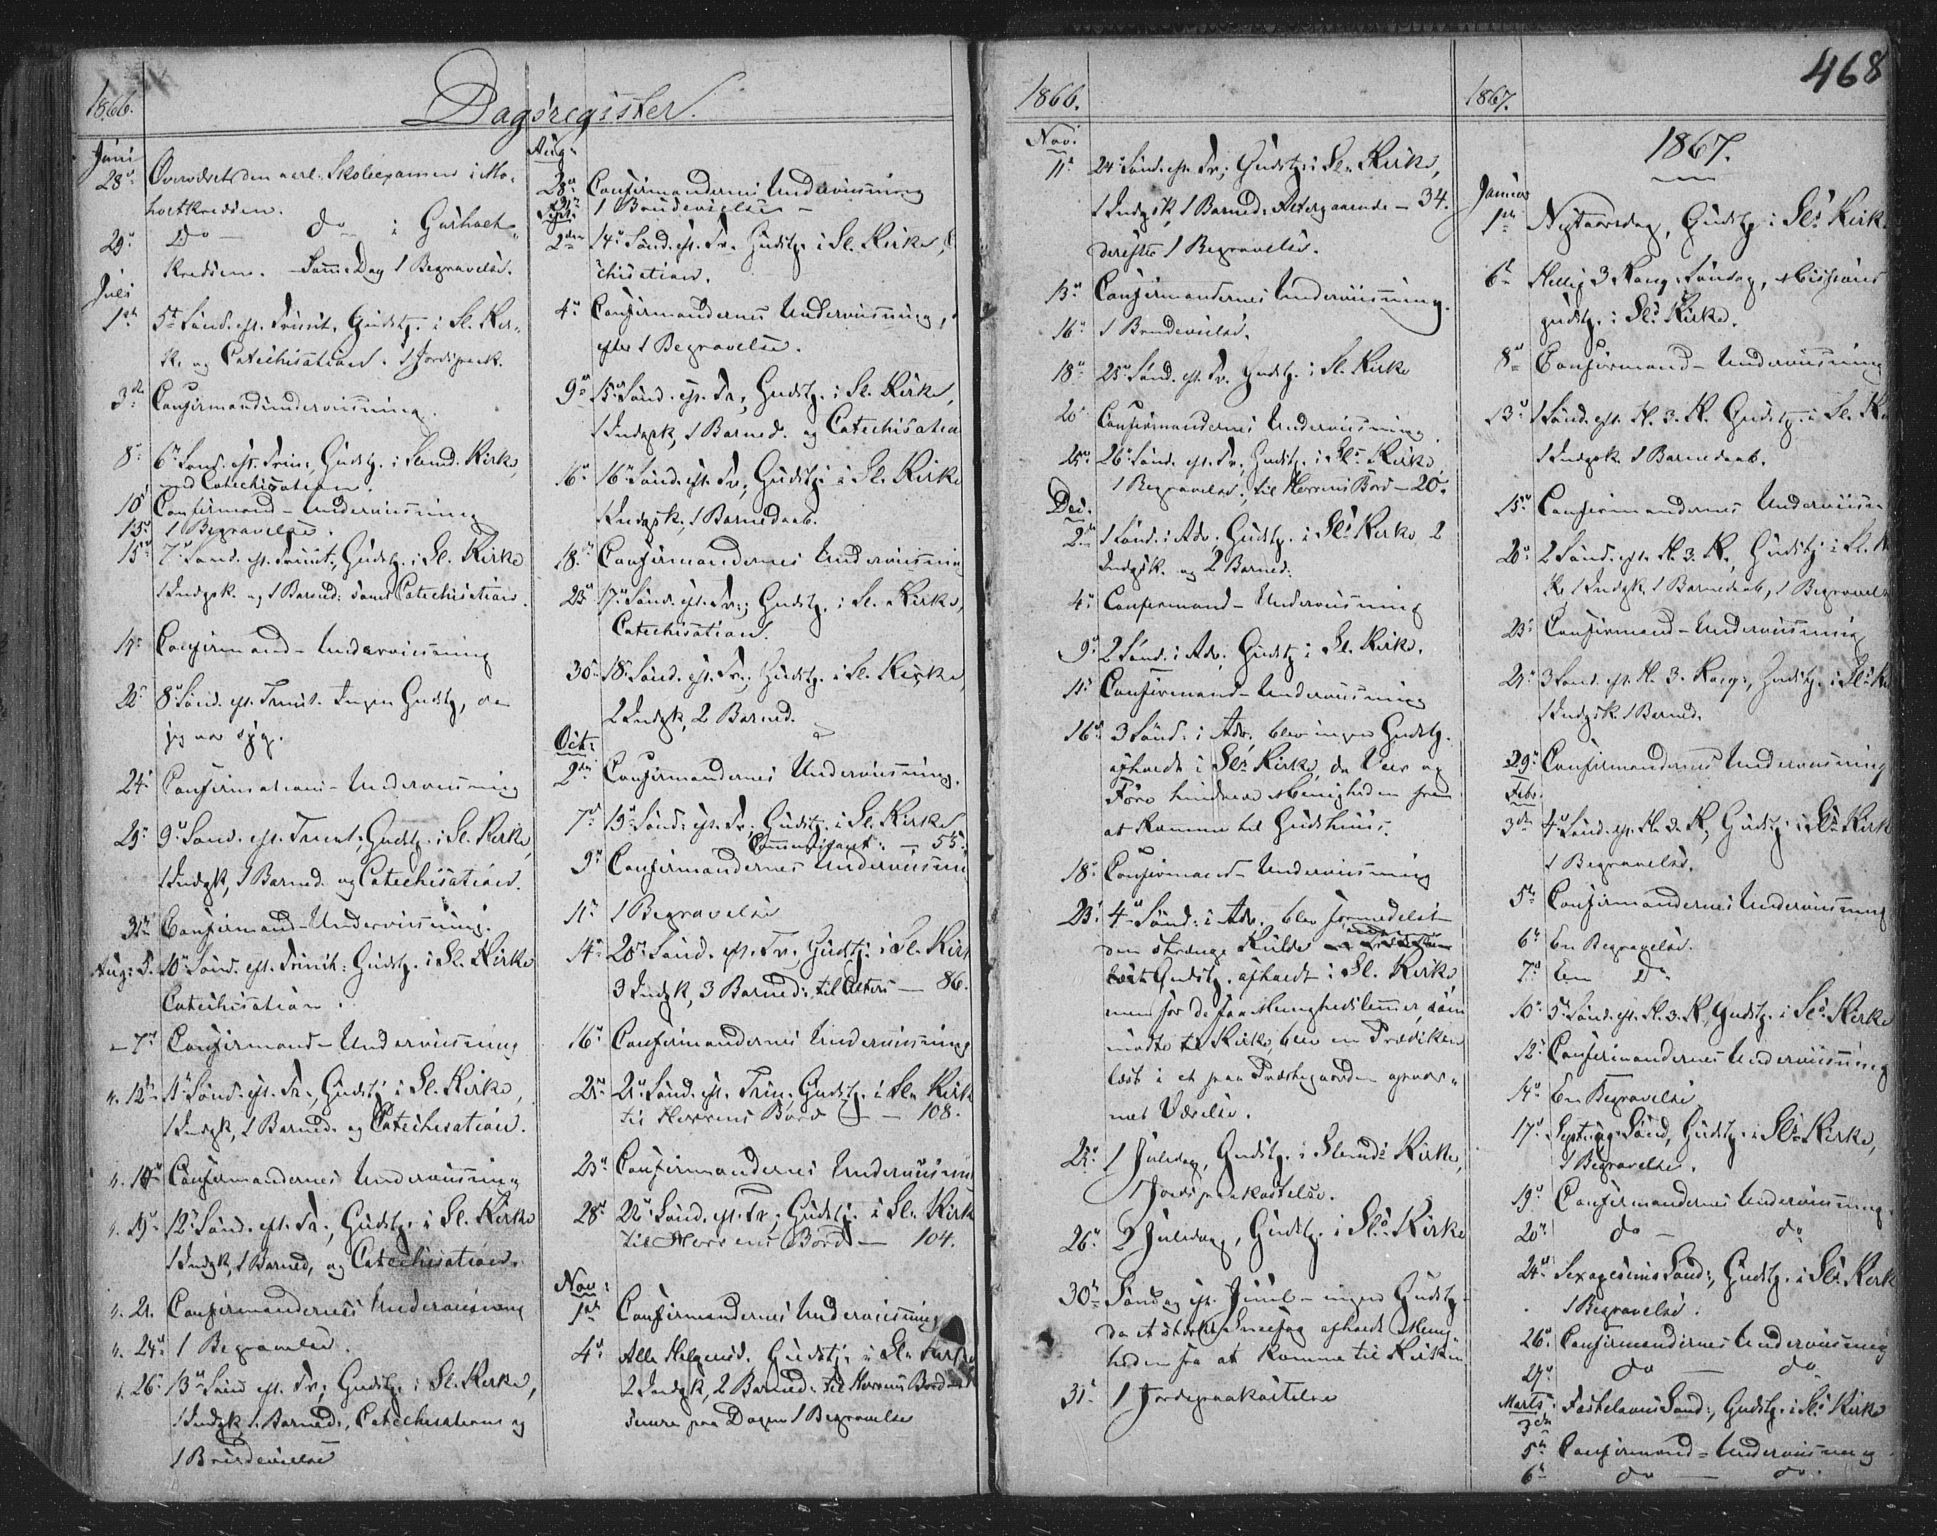 SAKO, Siljan kirkebøker, F/Fa/L0001: Parish register (official) no. 1, 1831-1870, p. 468